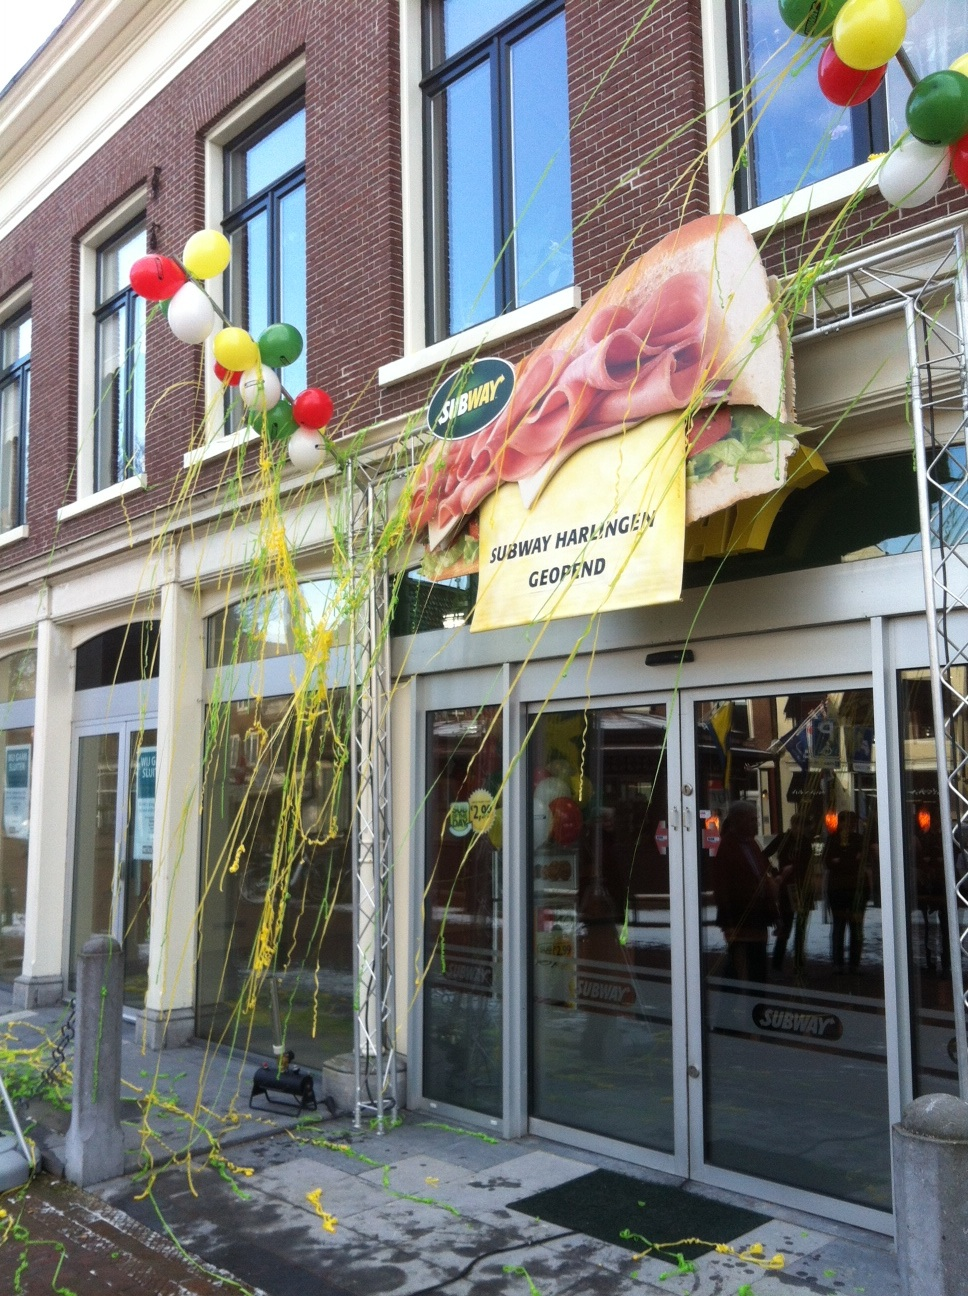 Nieuw Subway restaurant in Harlingen